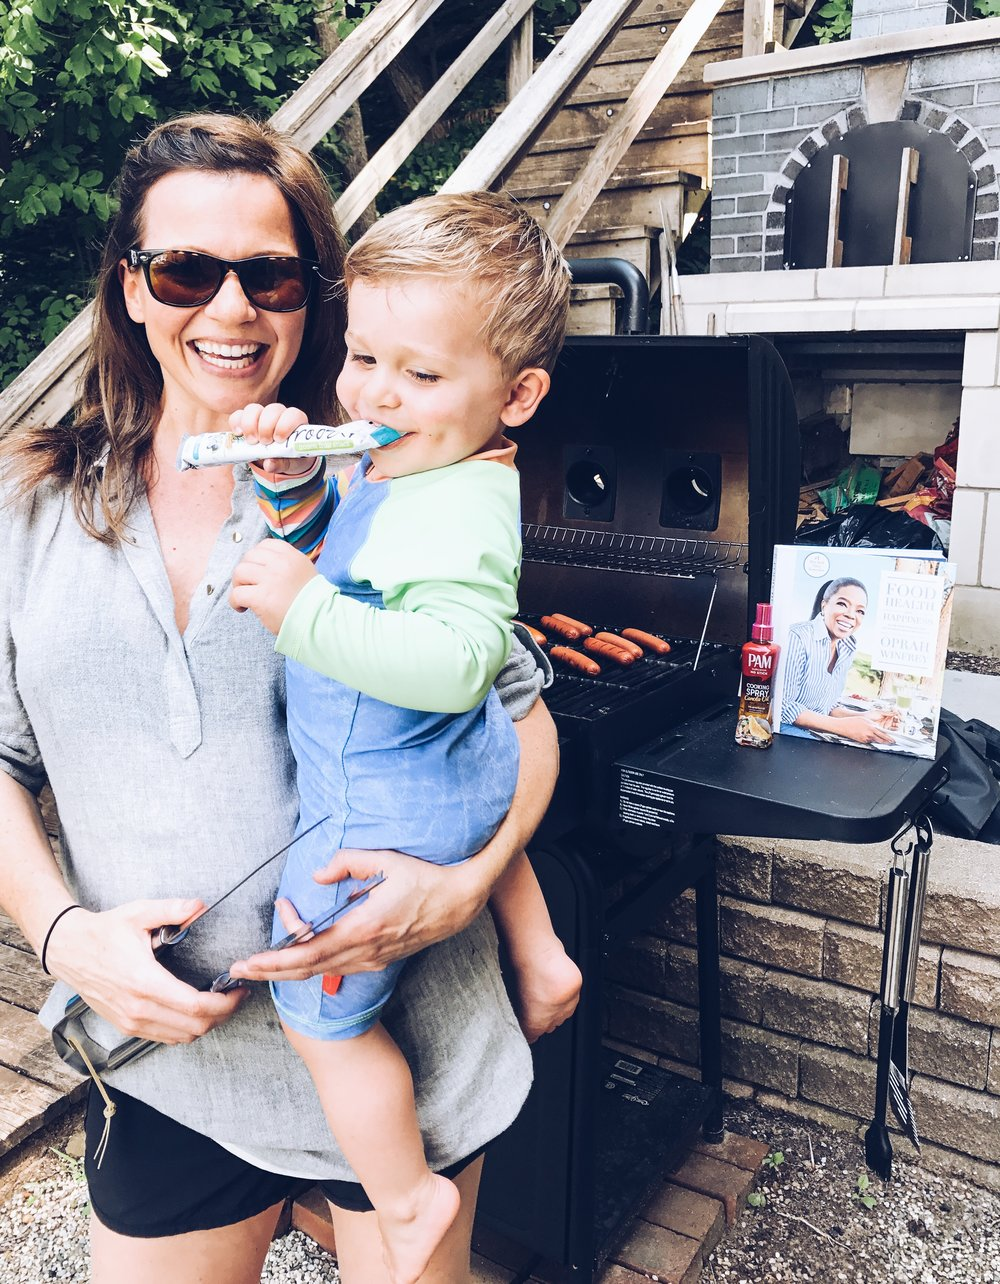 True Value - Outdoor Eats And Entertainment